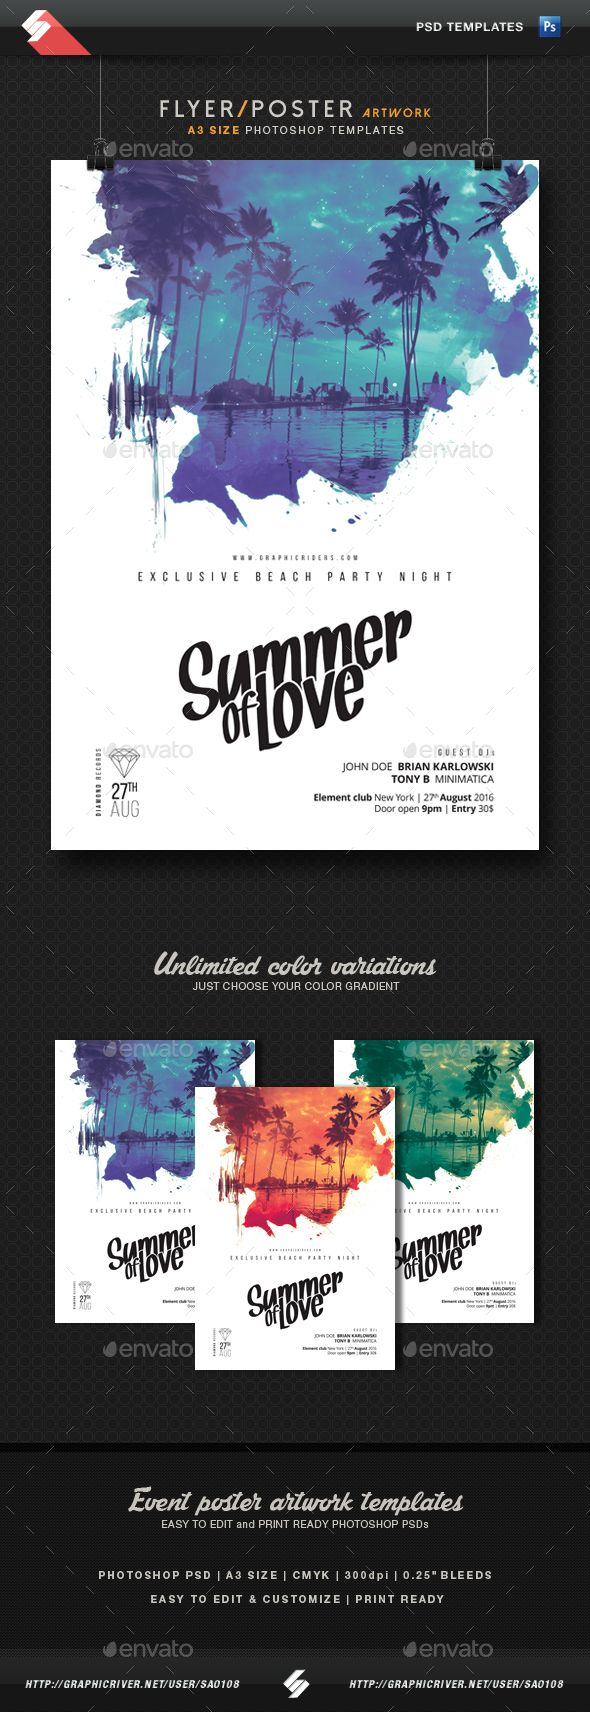 Summer Of Love - Party Flyer, Poster Template A3 | Pinterest | Party ...